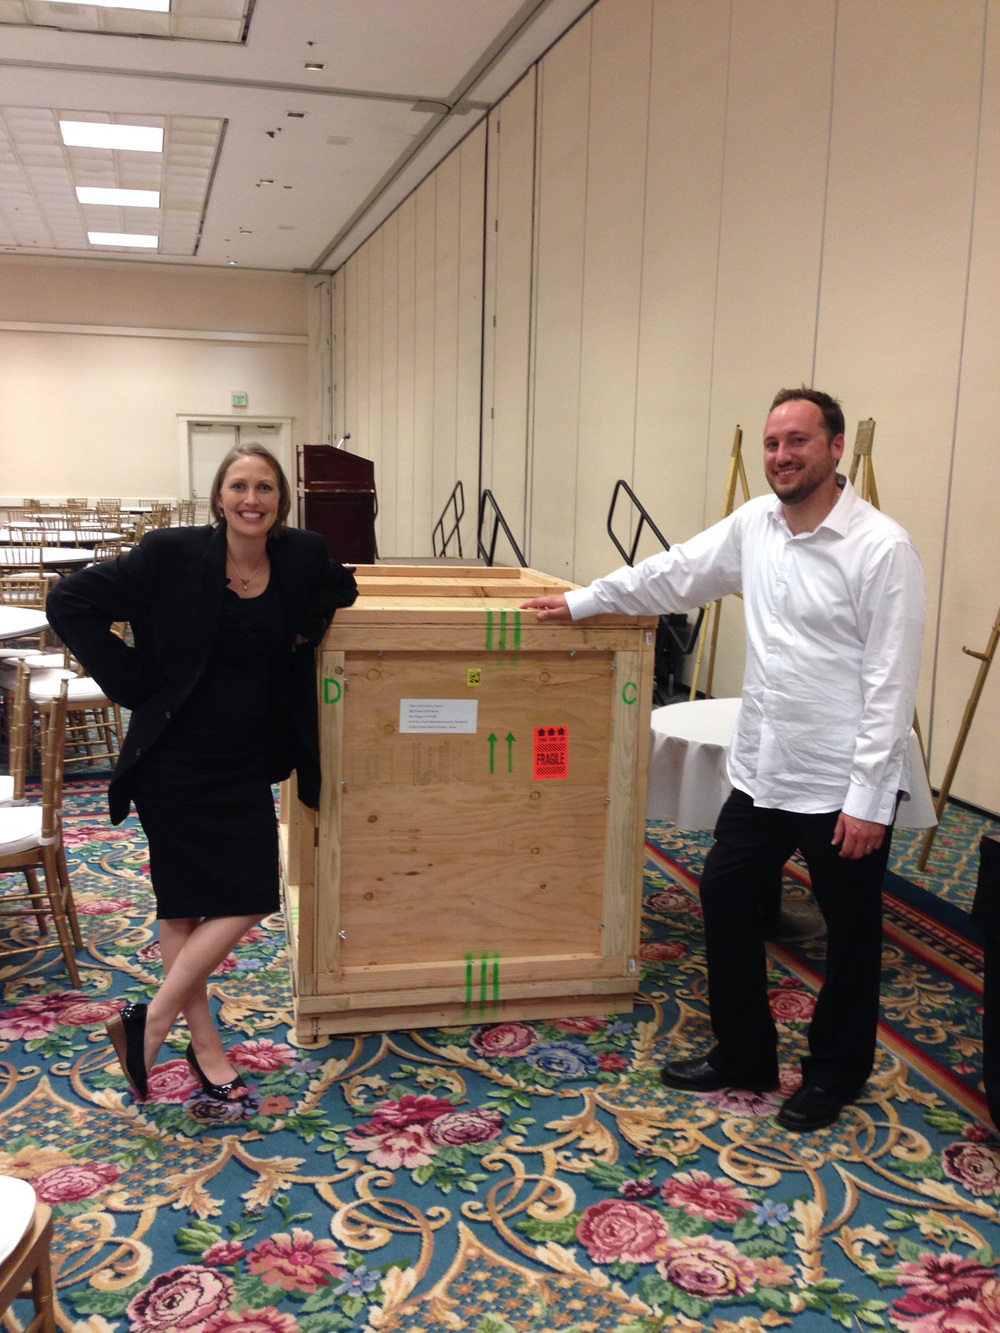 Sculpture re-crated after the banquet